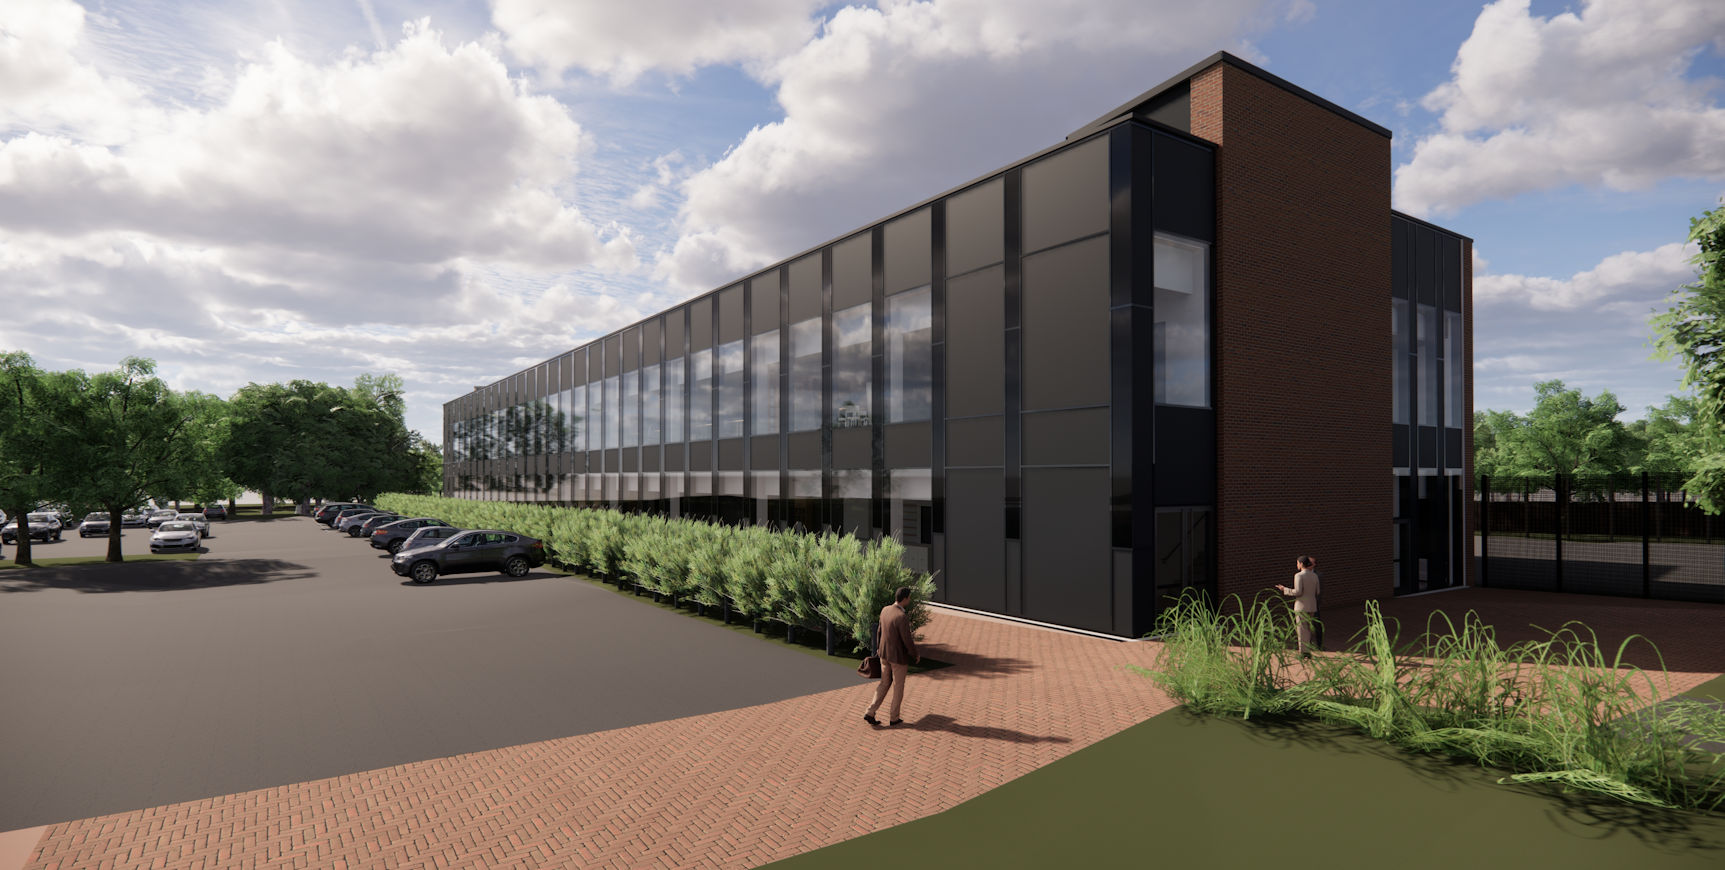 Willmott Dixon to deliver £18m Custody Suite for Bedfordshire Police